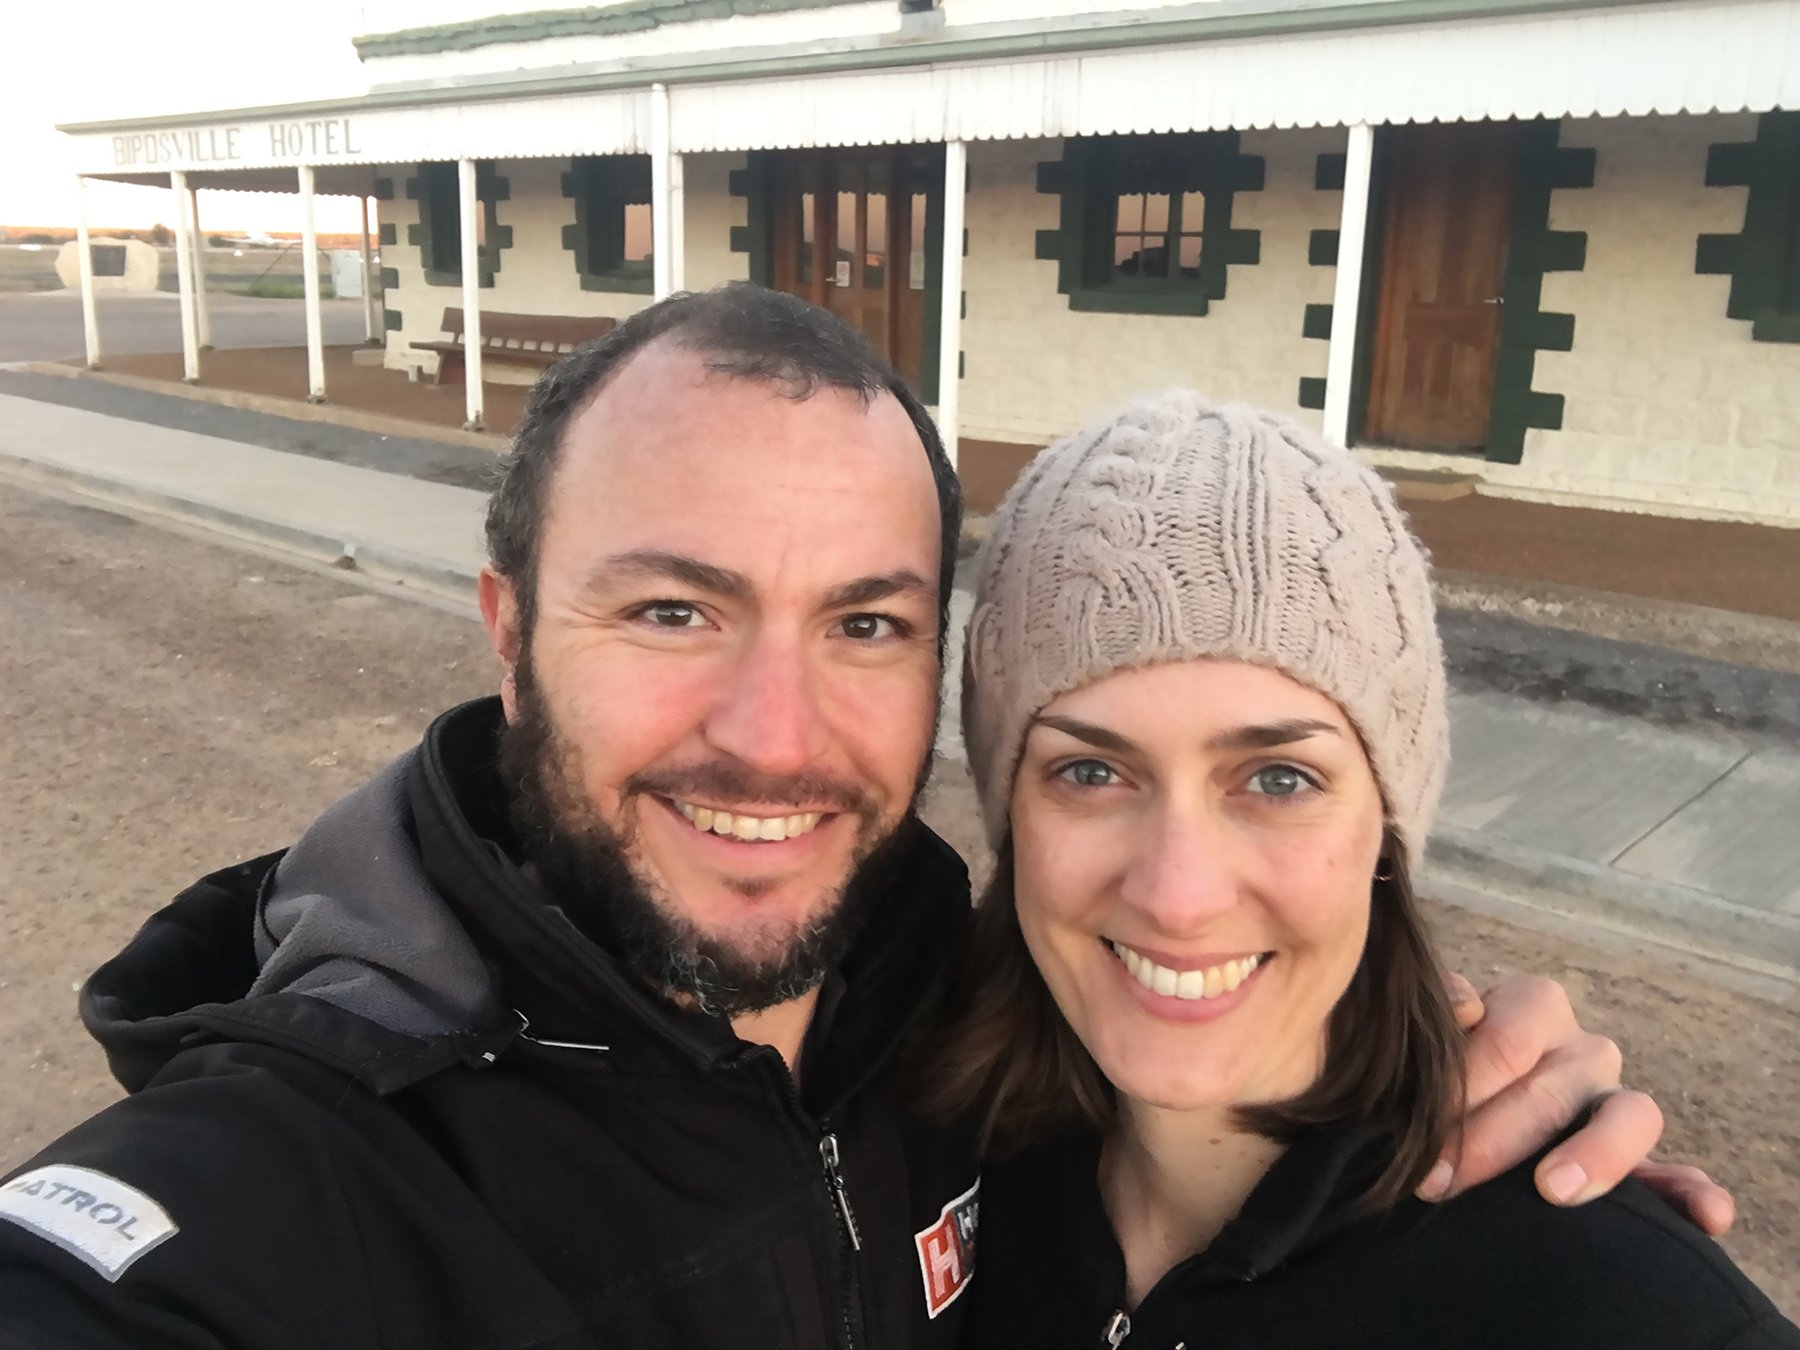 Matt and Marianne out the front of the Birdsville Hotel